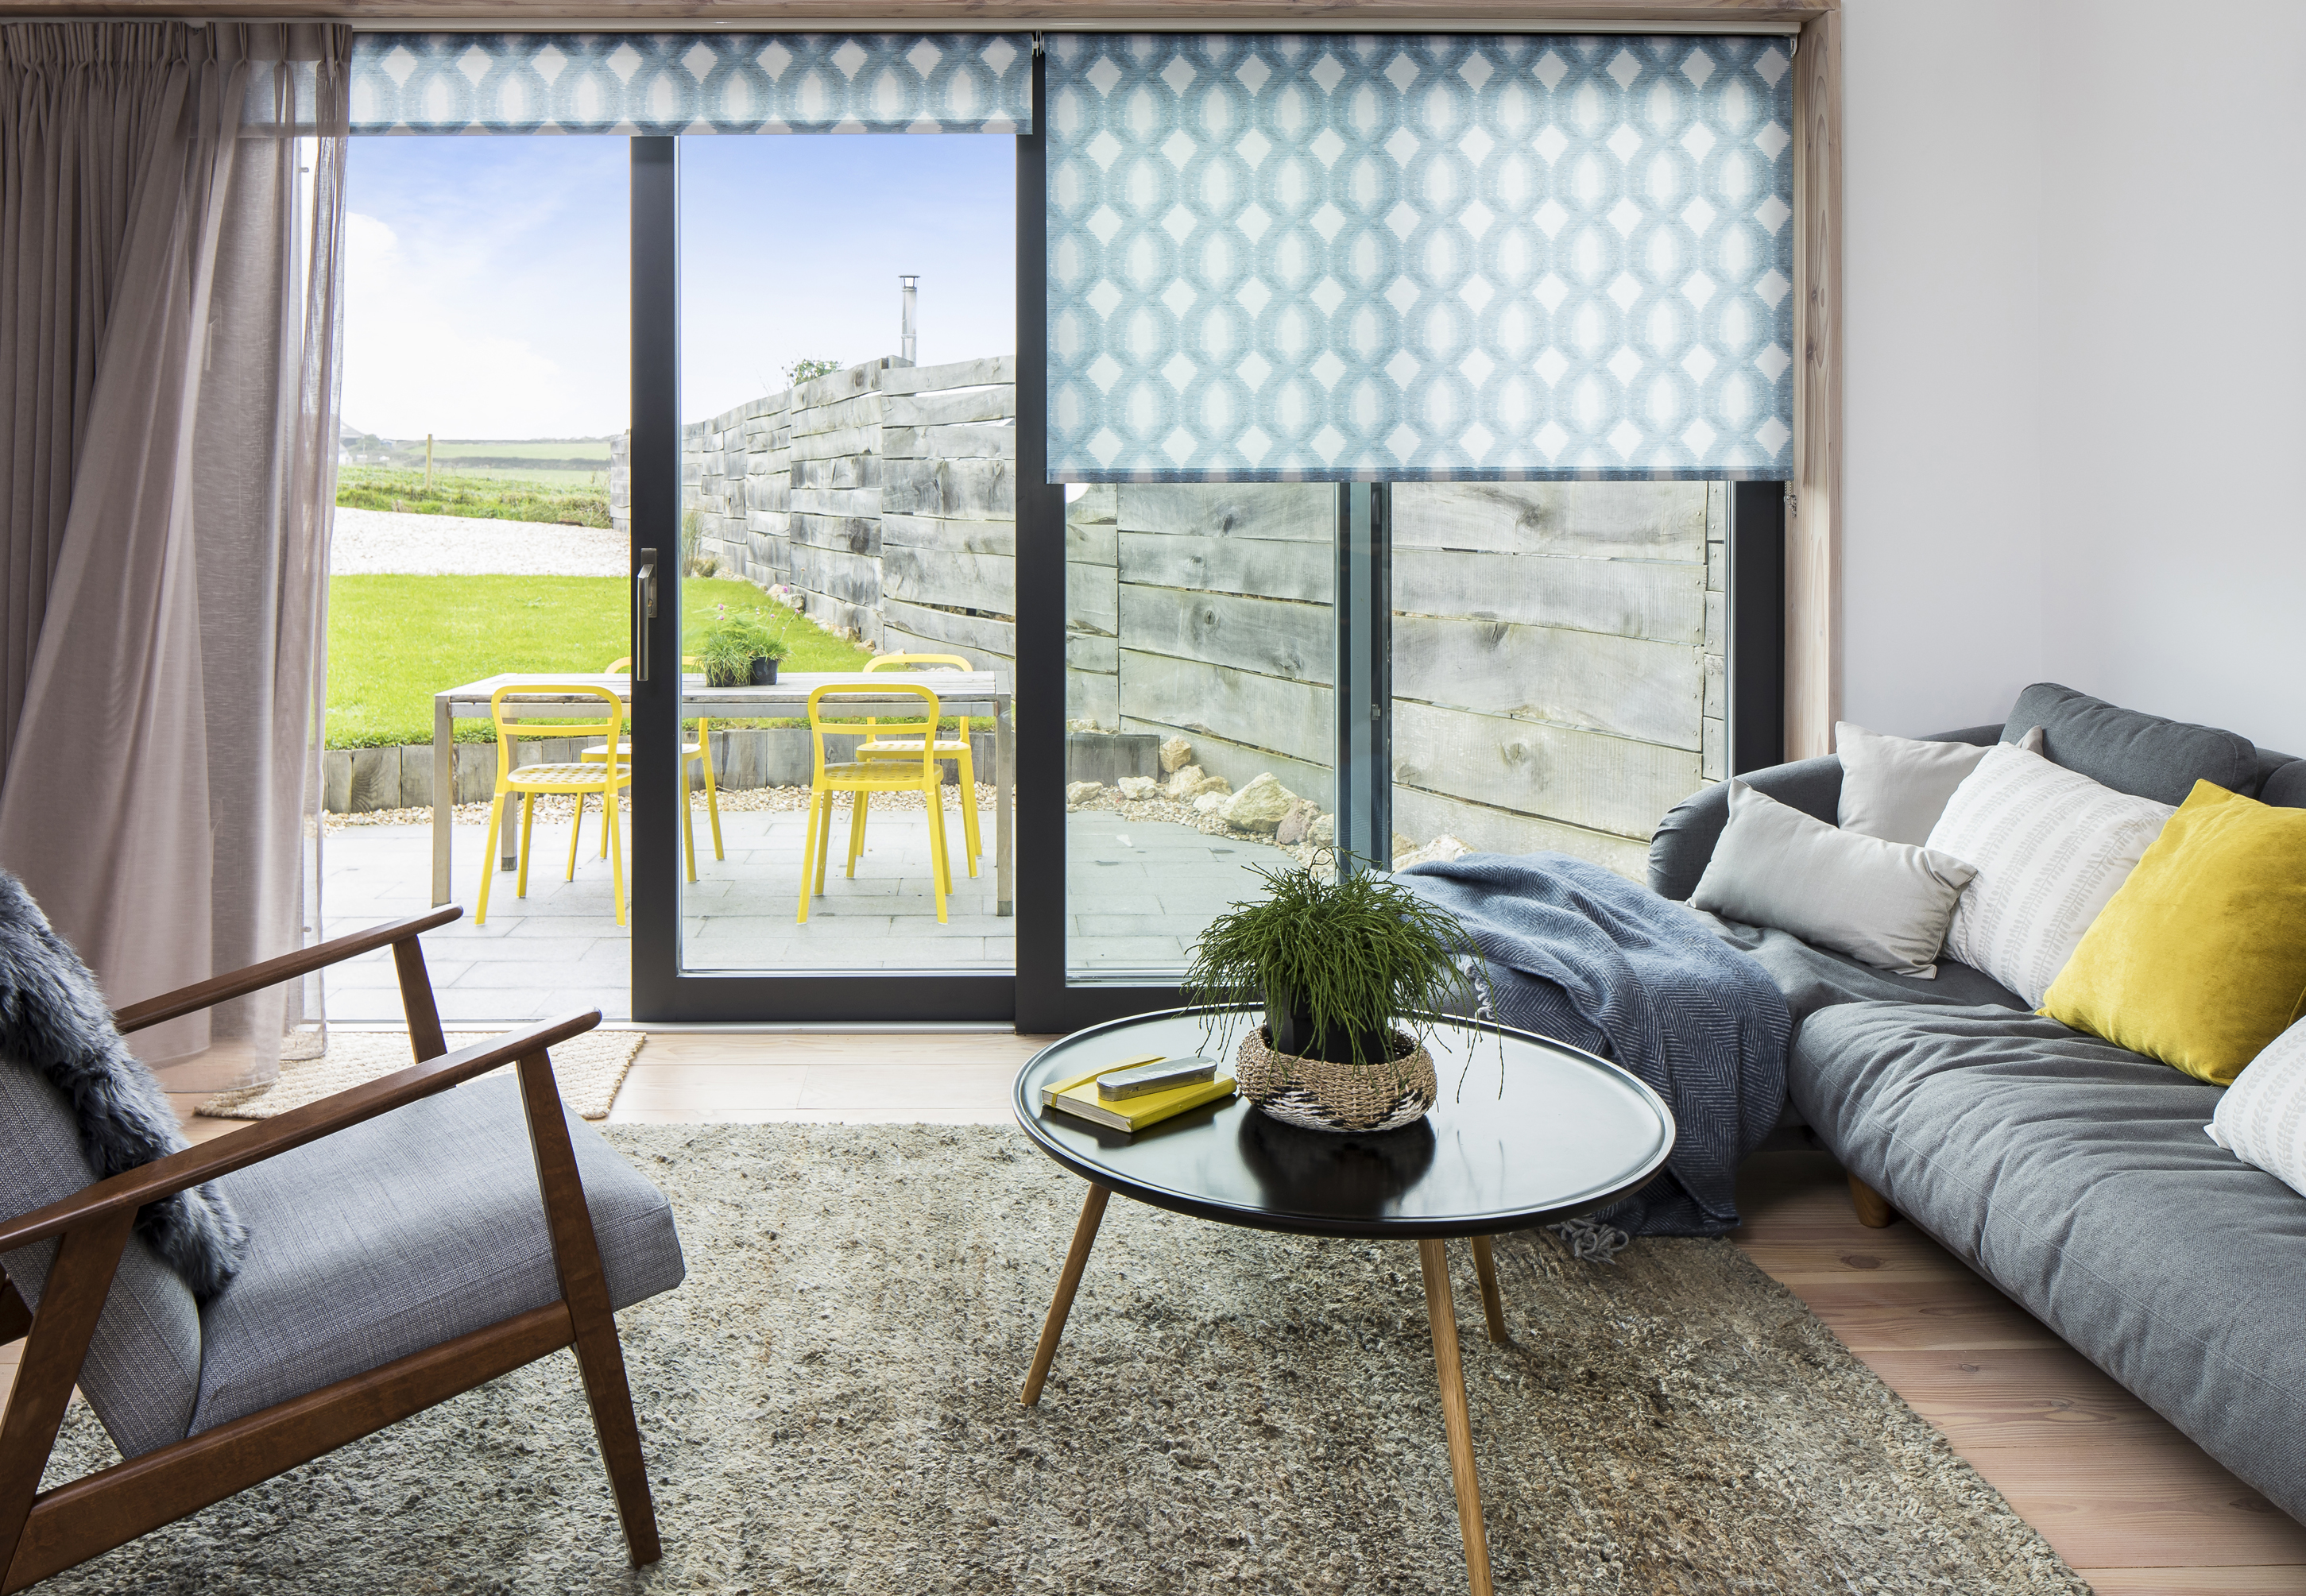 have an endless summer with these 35 beach house decor ideas home decor The lounge at Charlie Luxtonu0027s coastal home with Brindle Denim Drift Roller  Blind, from £72 and Serene Linen Voile, from £54 a pair, both from Hillarys  ...